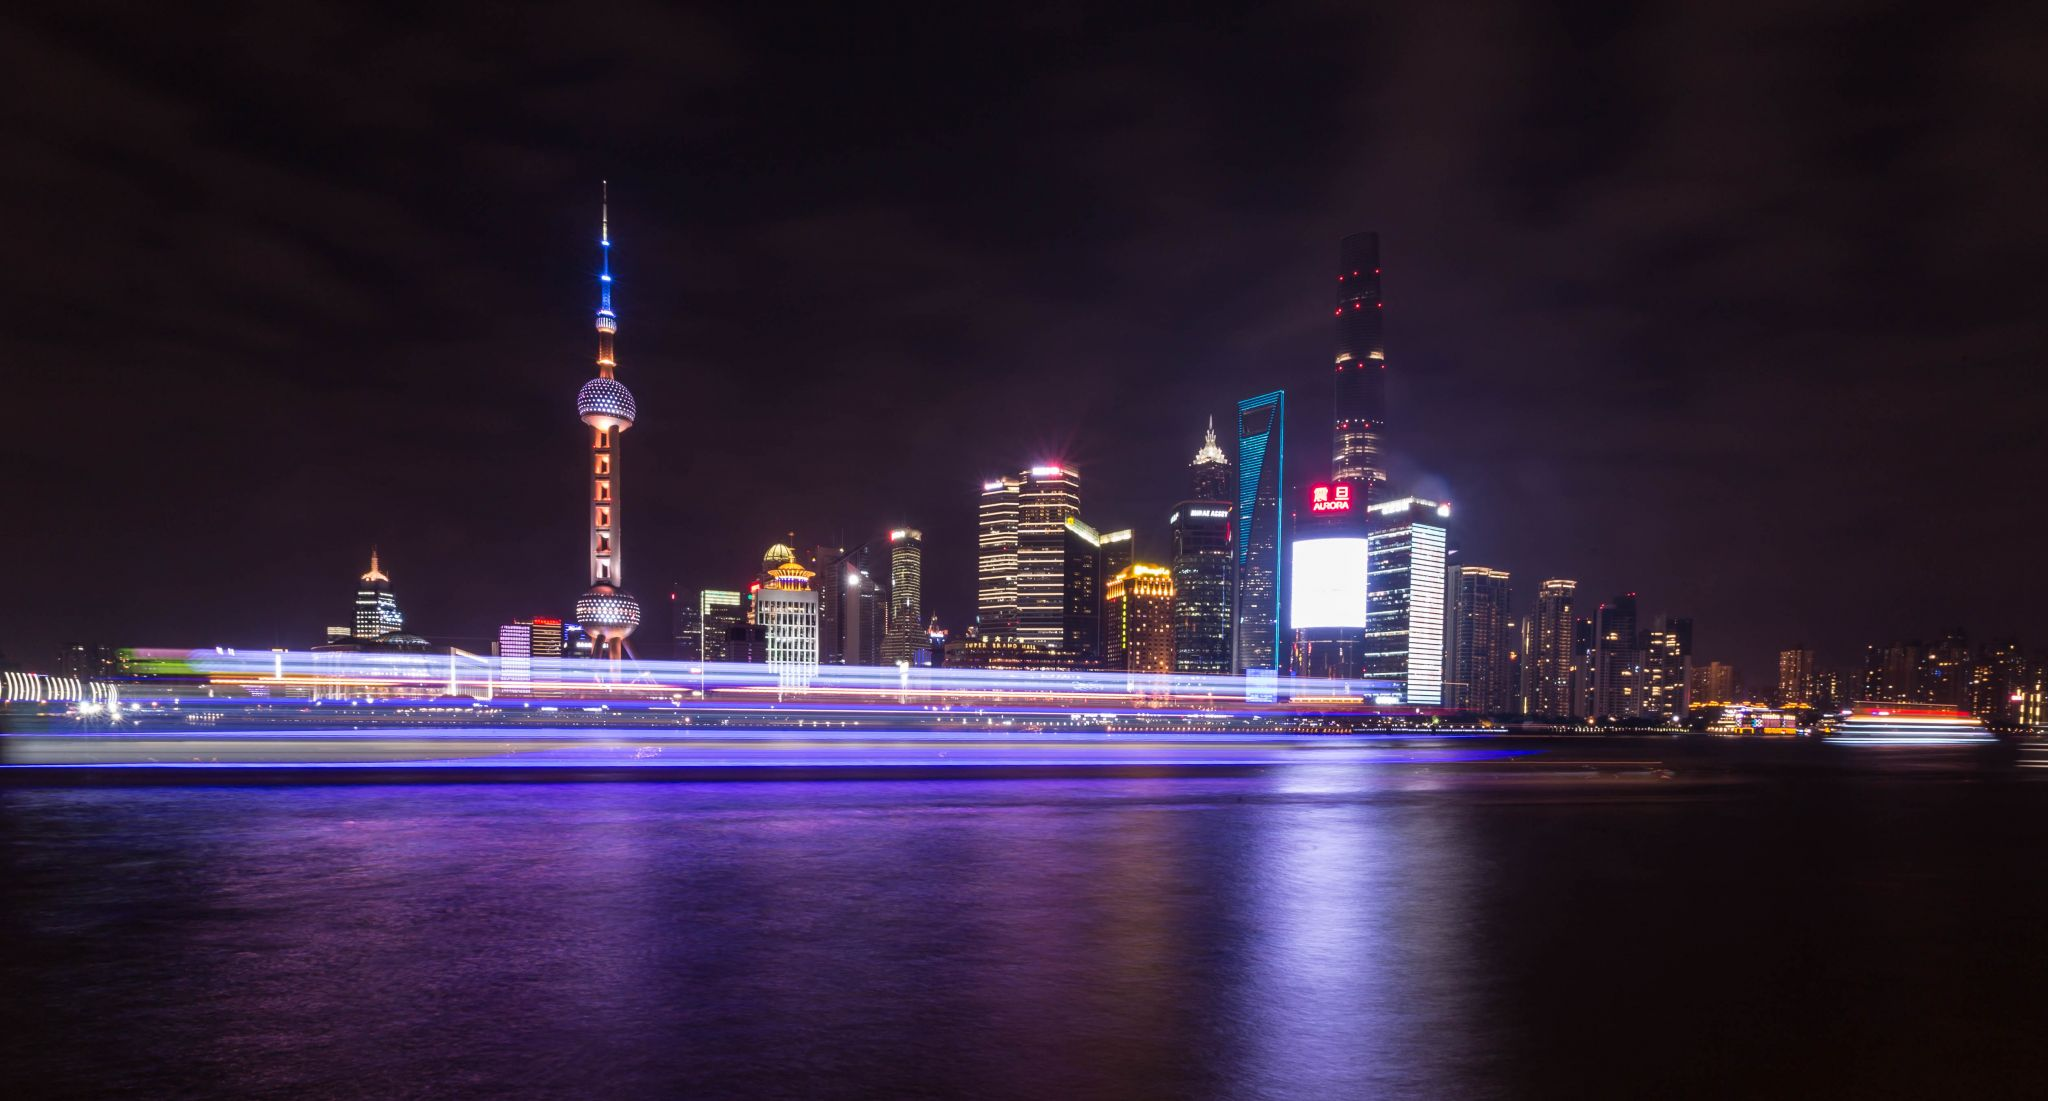 Shanghai Pudong Skyline, The Bund, China